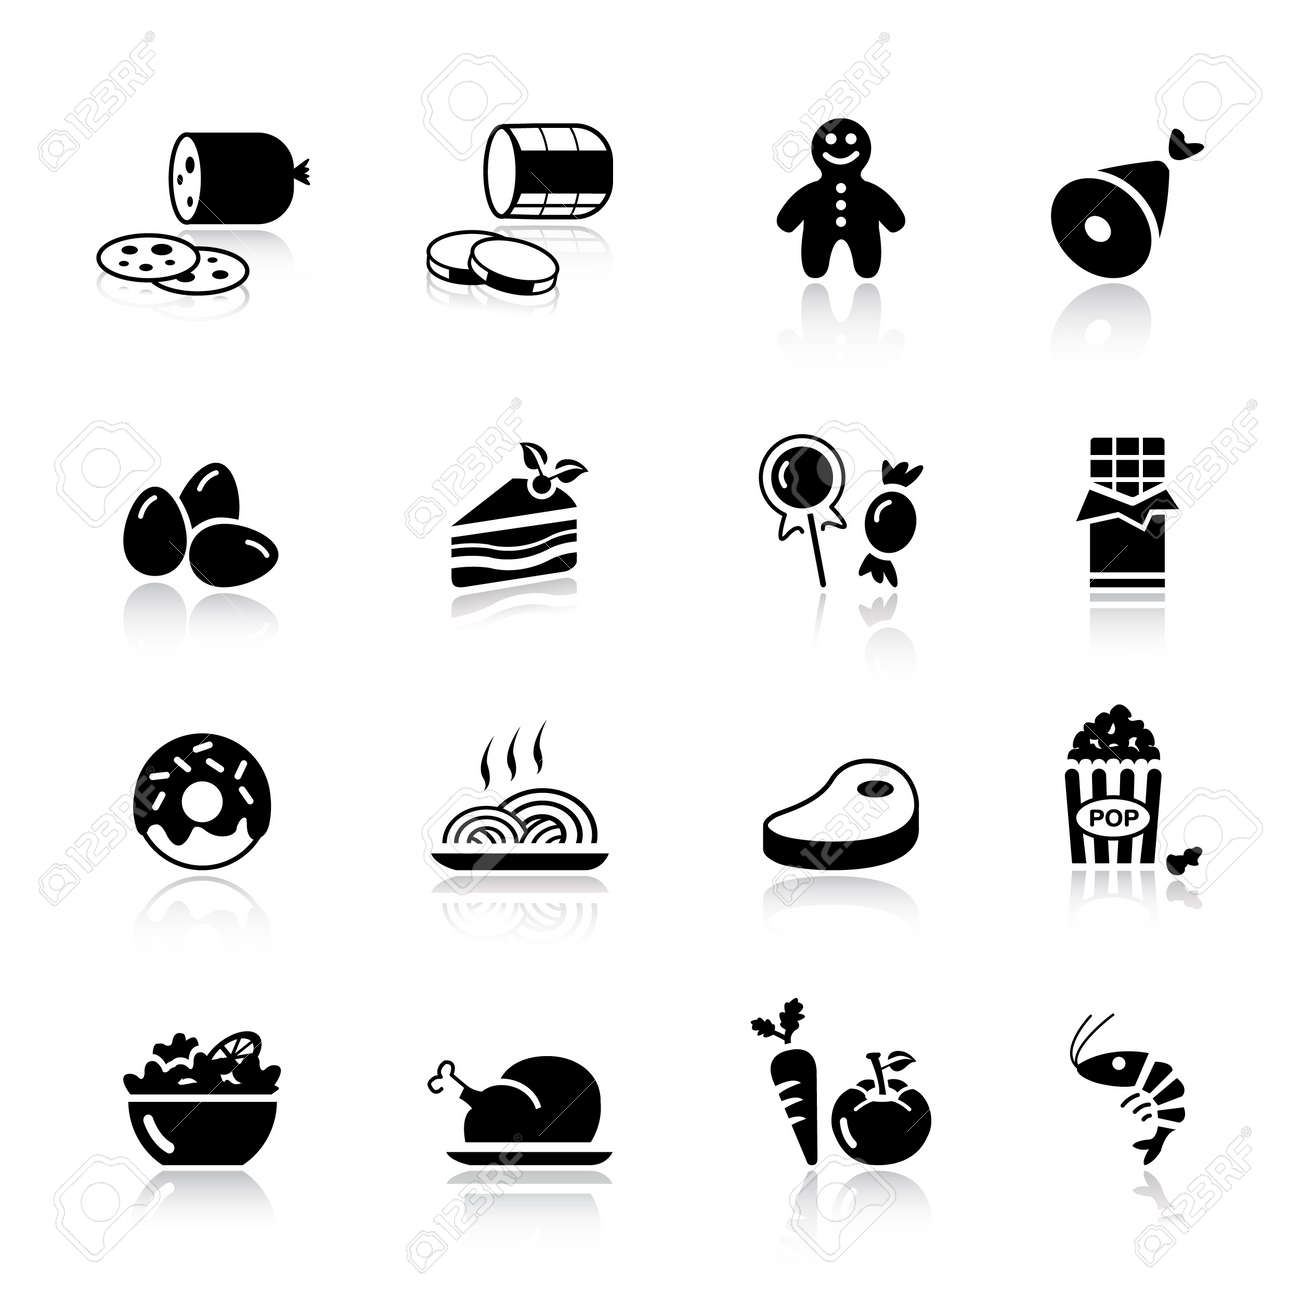 Basic - Food Icons Stock Vector - 9934685